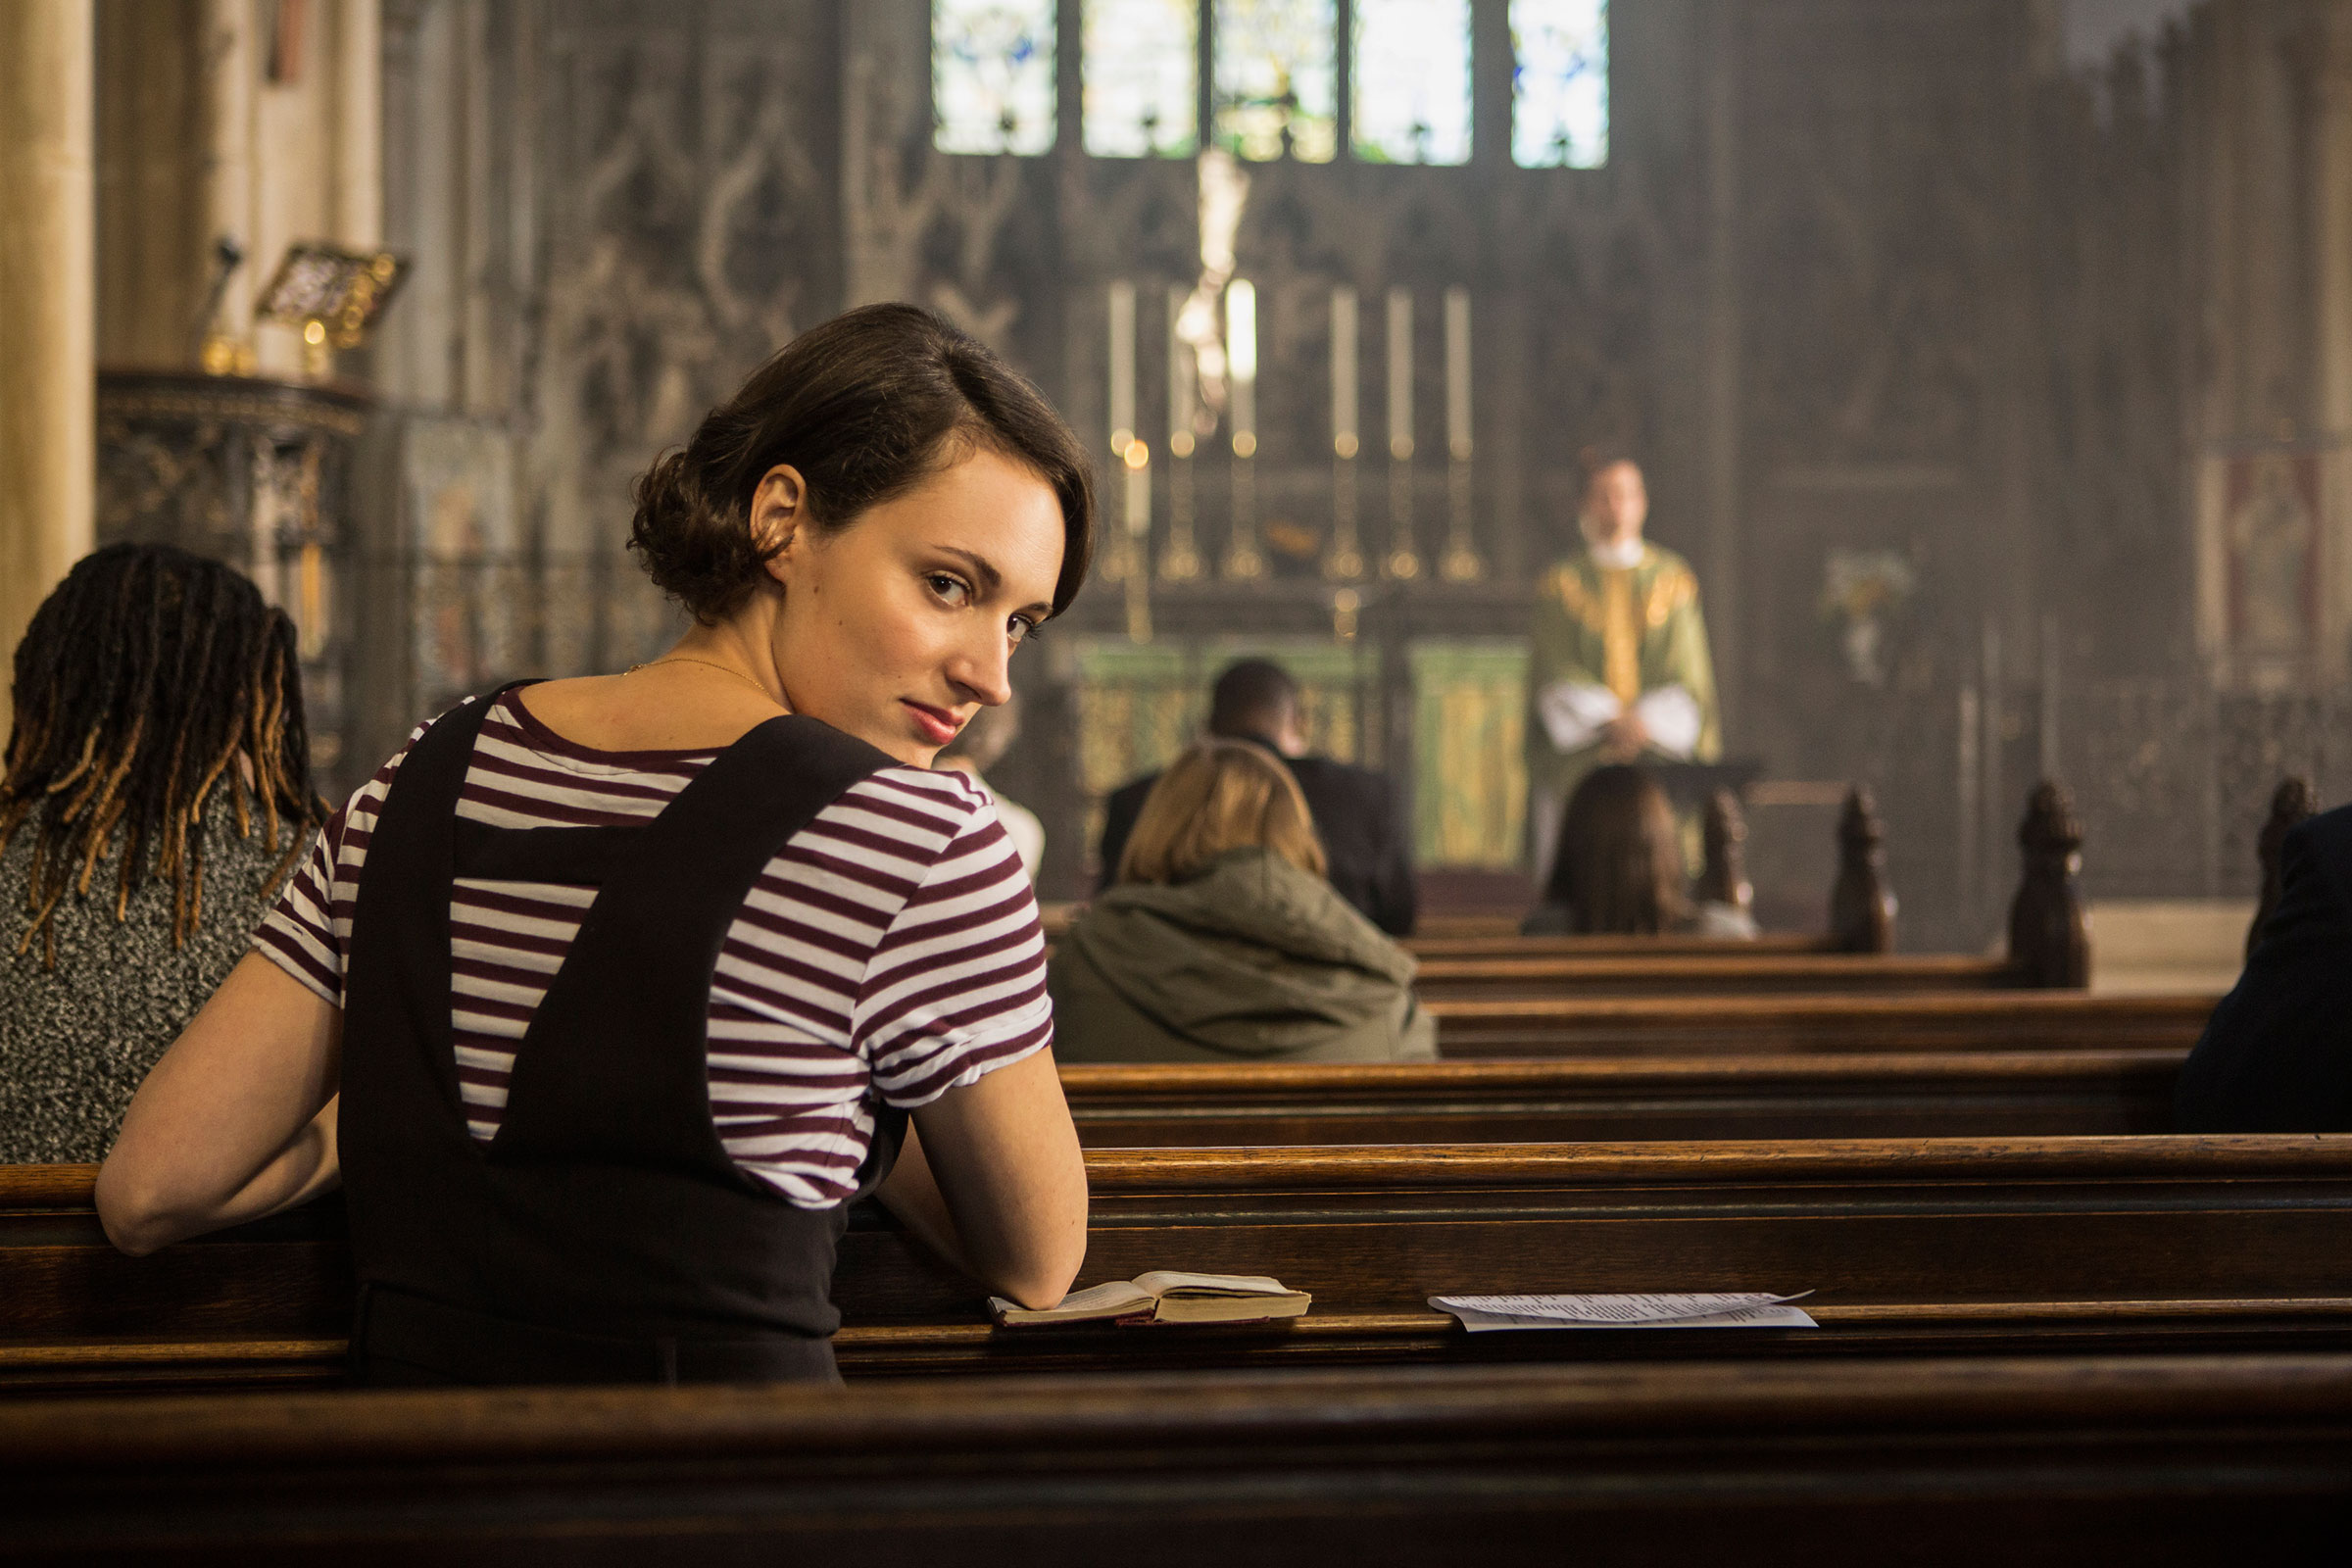 In Fleabag's second season, creator and star Phoebe Waller-Bridge comes to Jesus